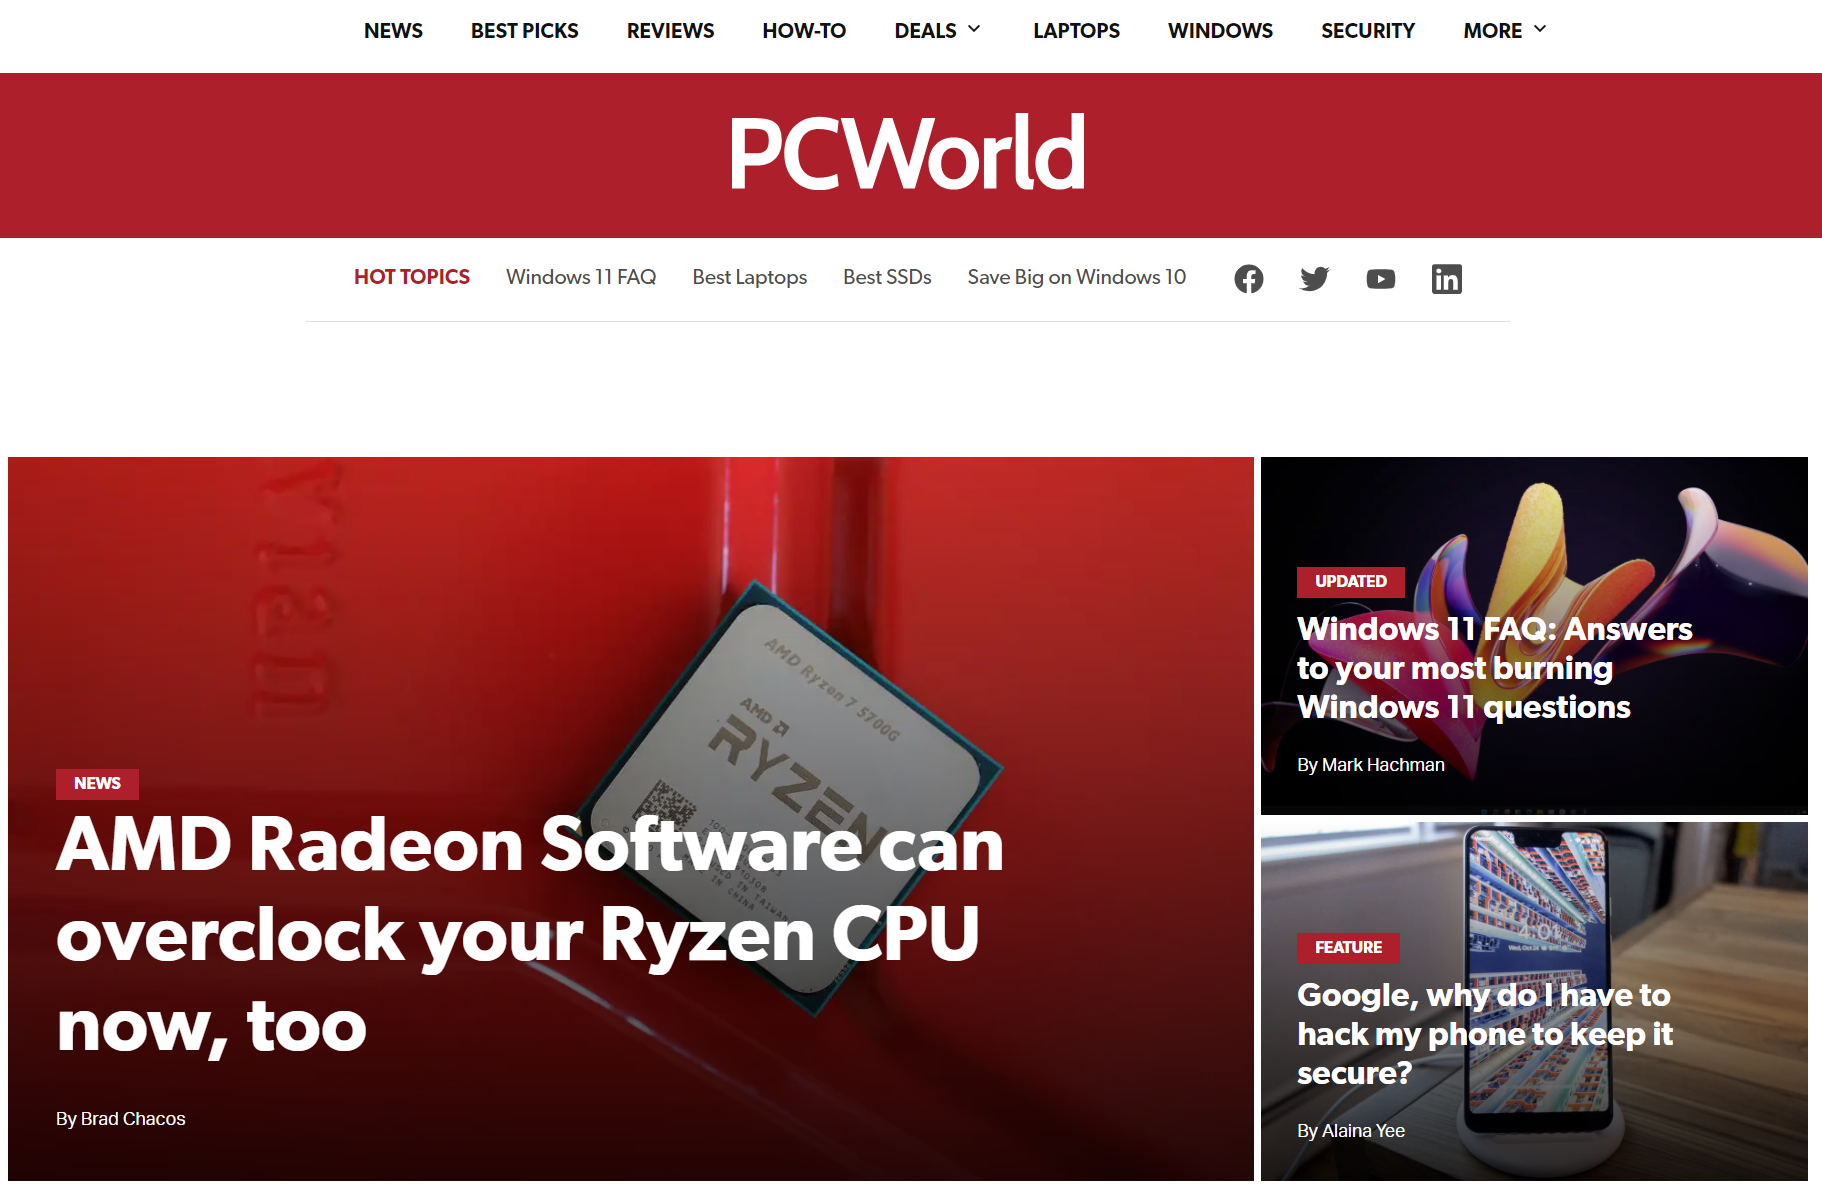 PCWorld home page redesign